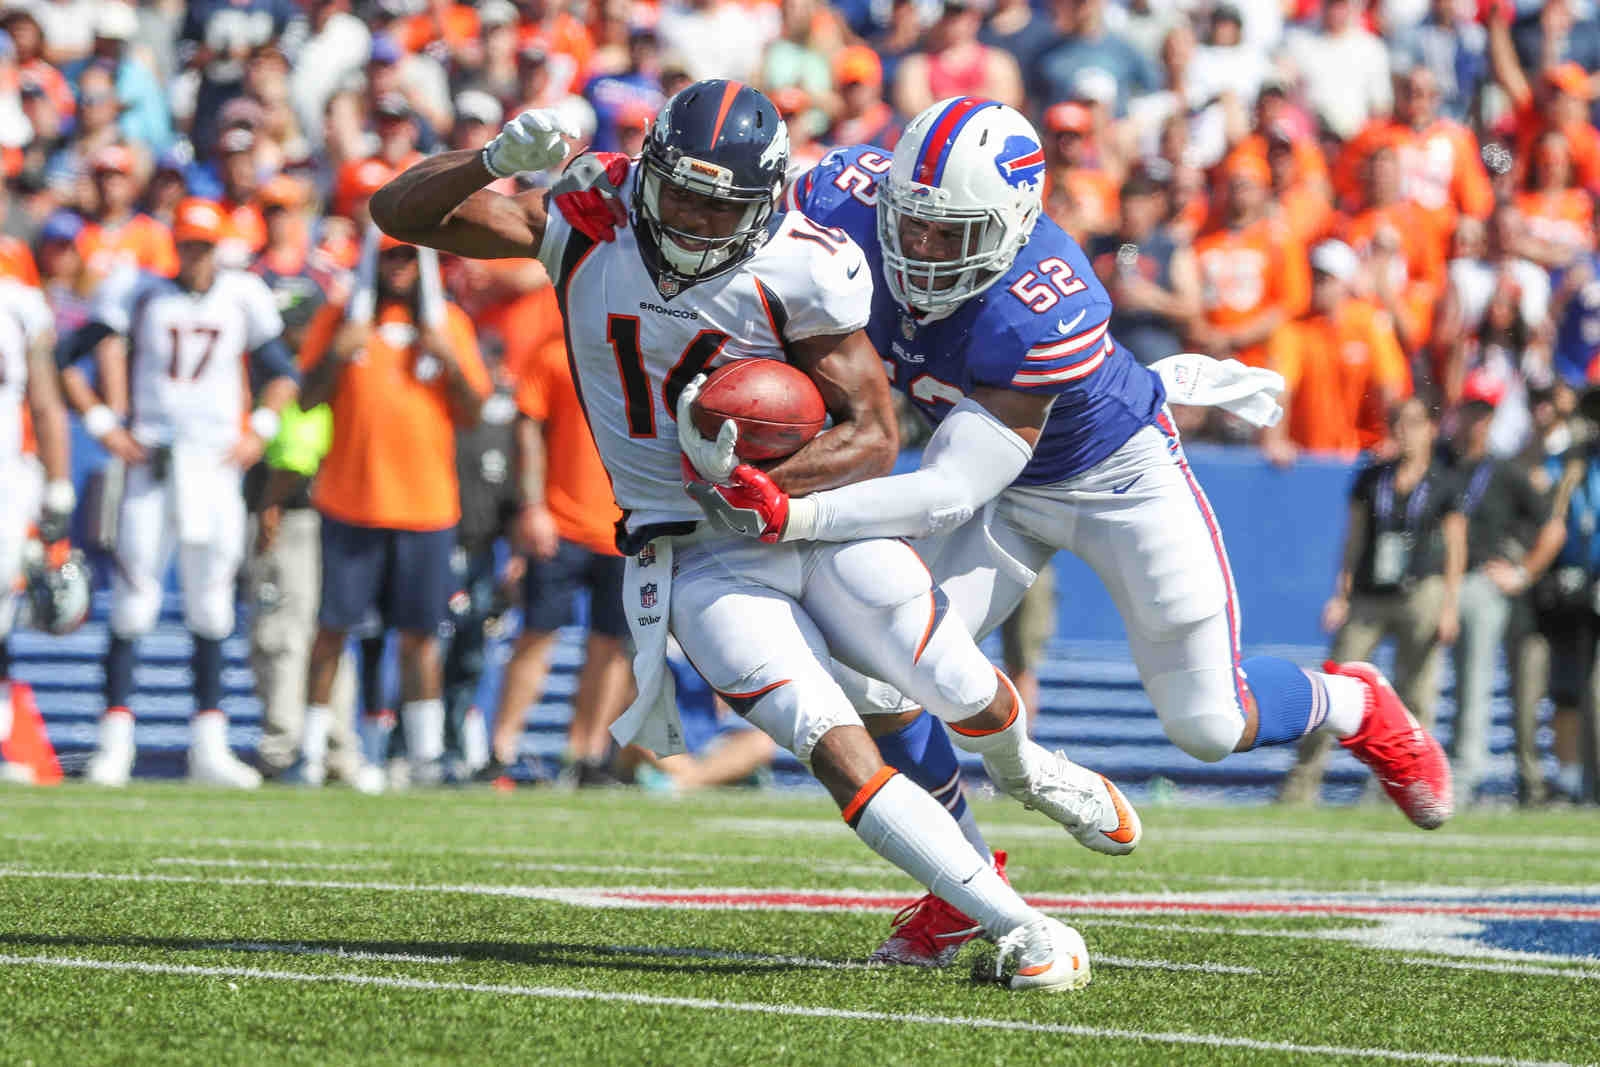 Buffalo Bills linebacker Preston Brown (52) tackles Denver Broncos wide receiver Bennie Fowler III (16) in the first quarter.